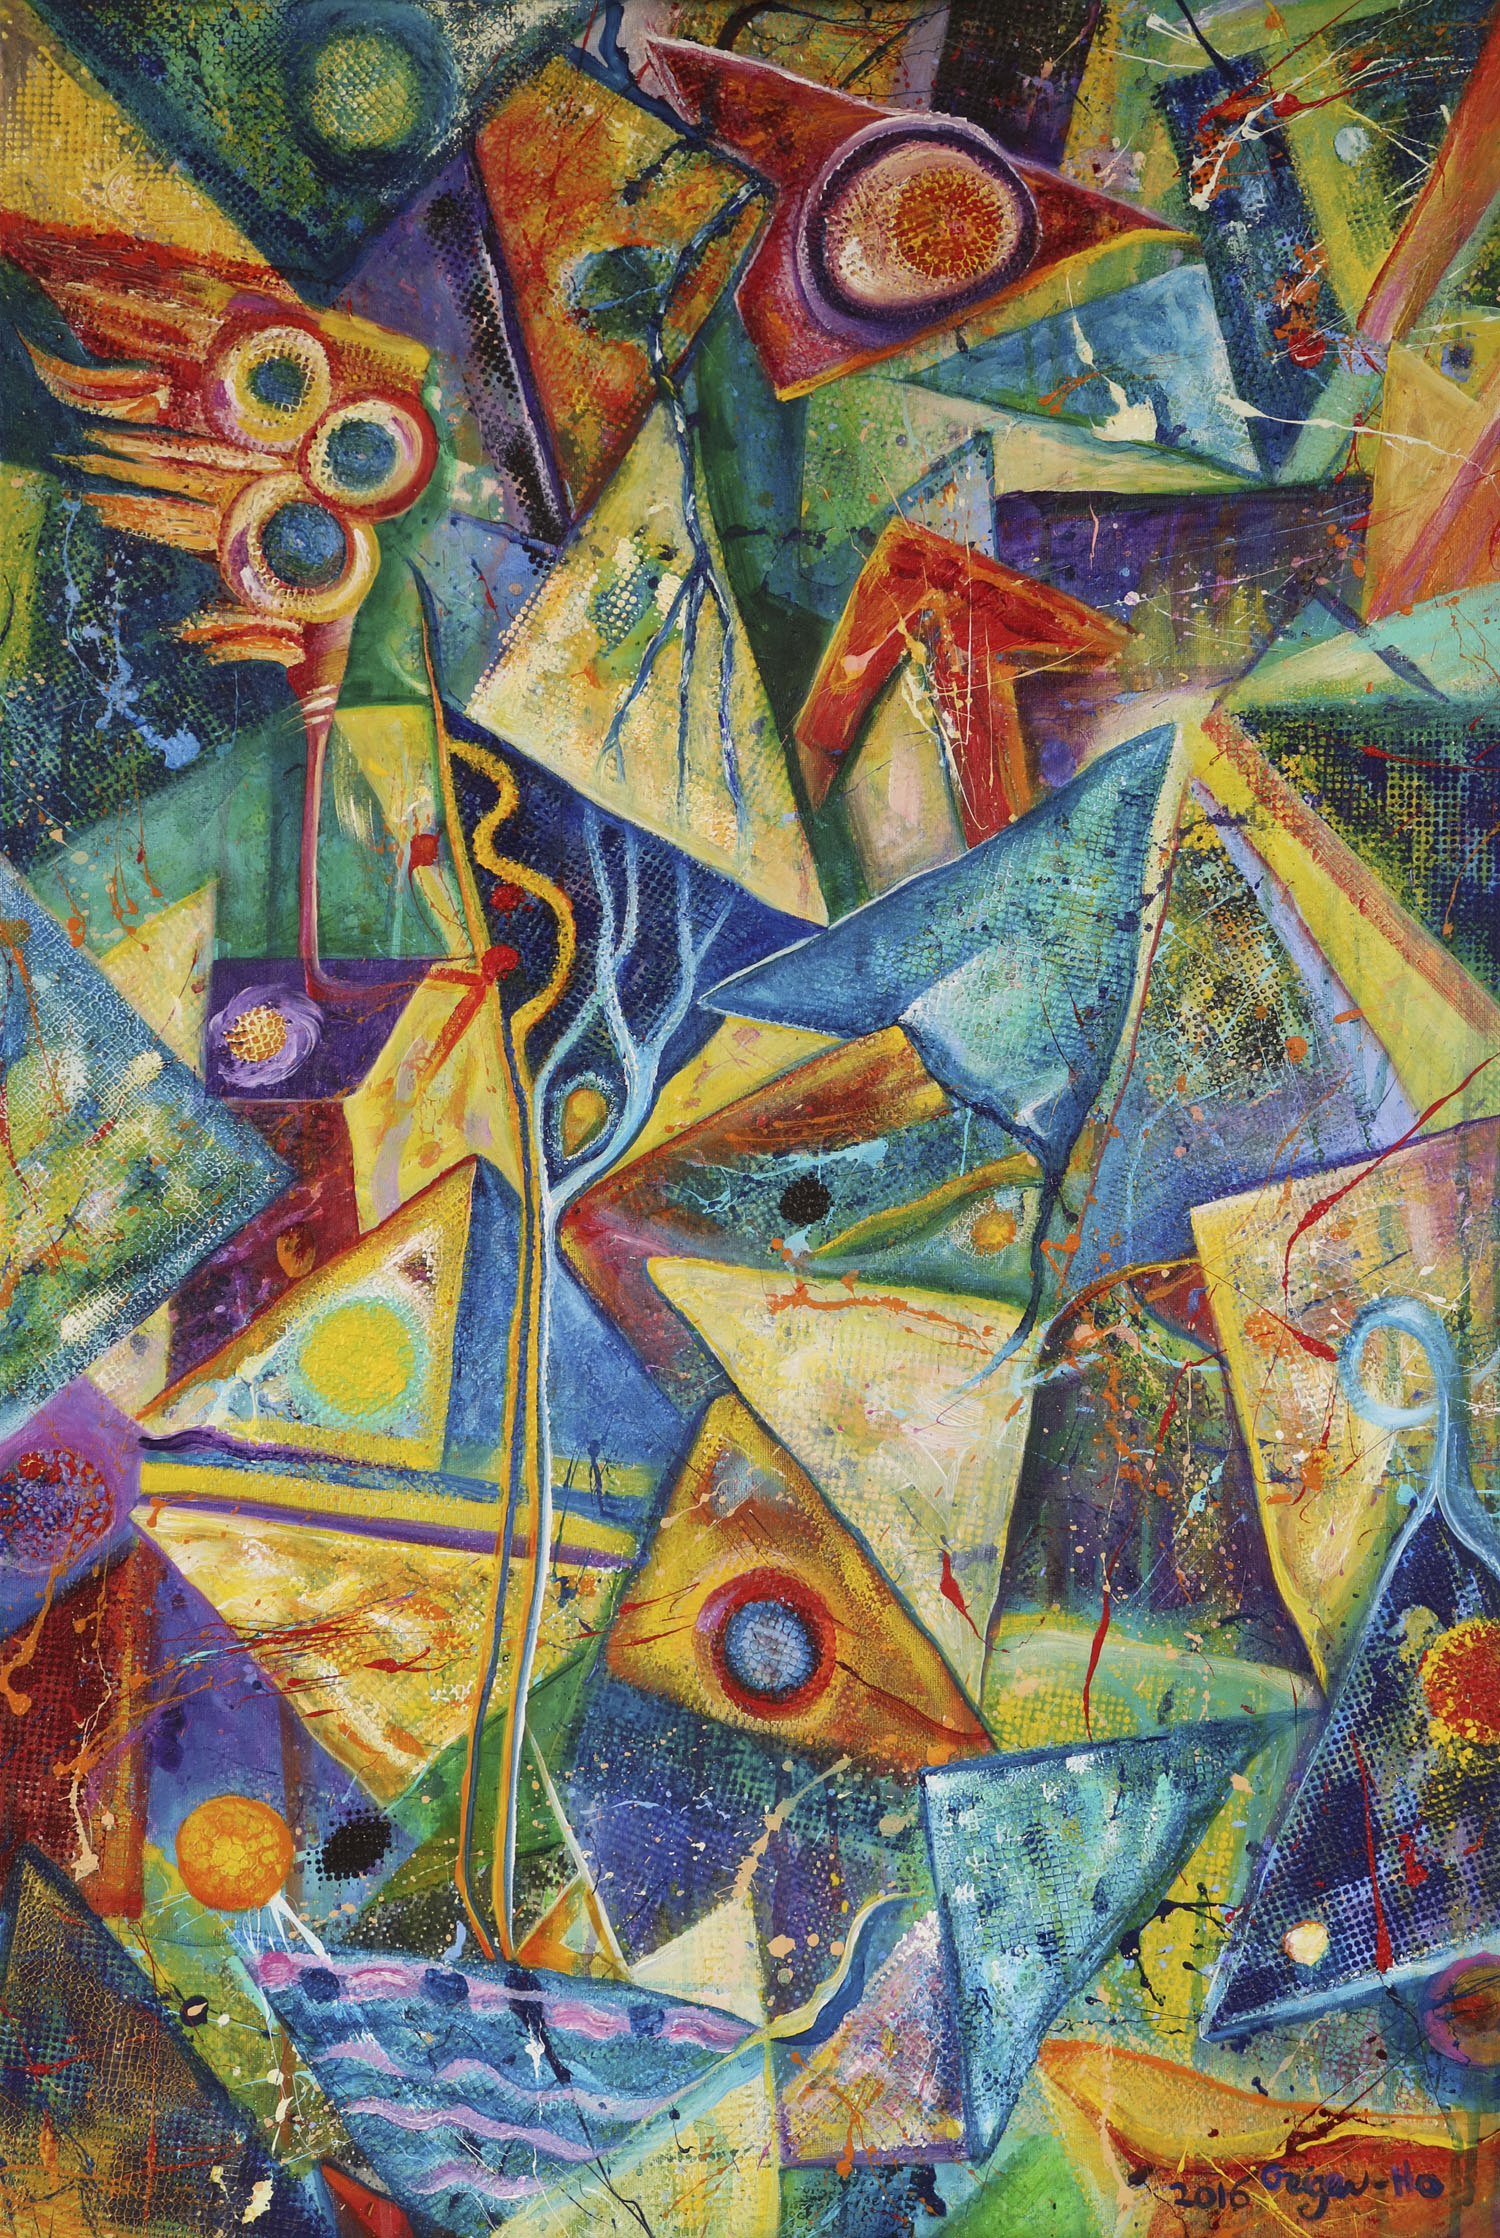 MartieGeiger-Ho_Existential-Lifeforms_Painting_36x24.jpg